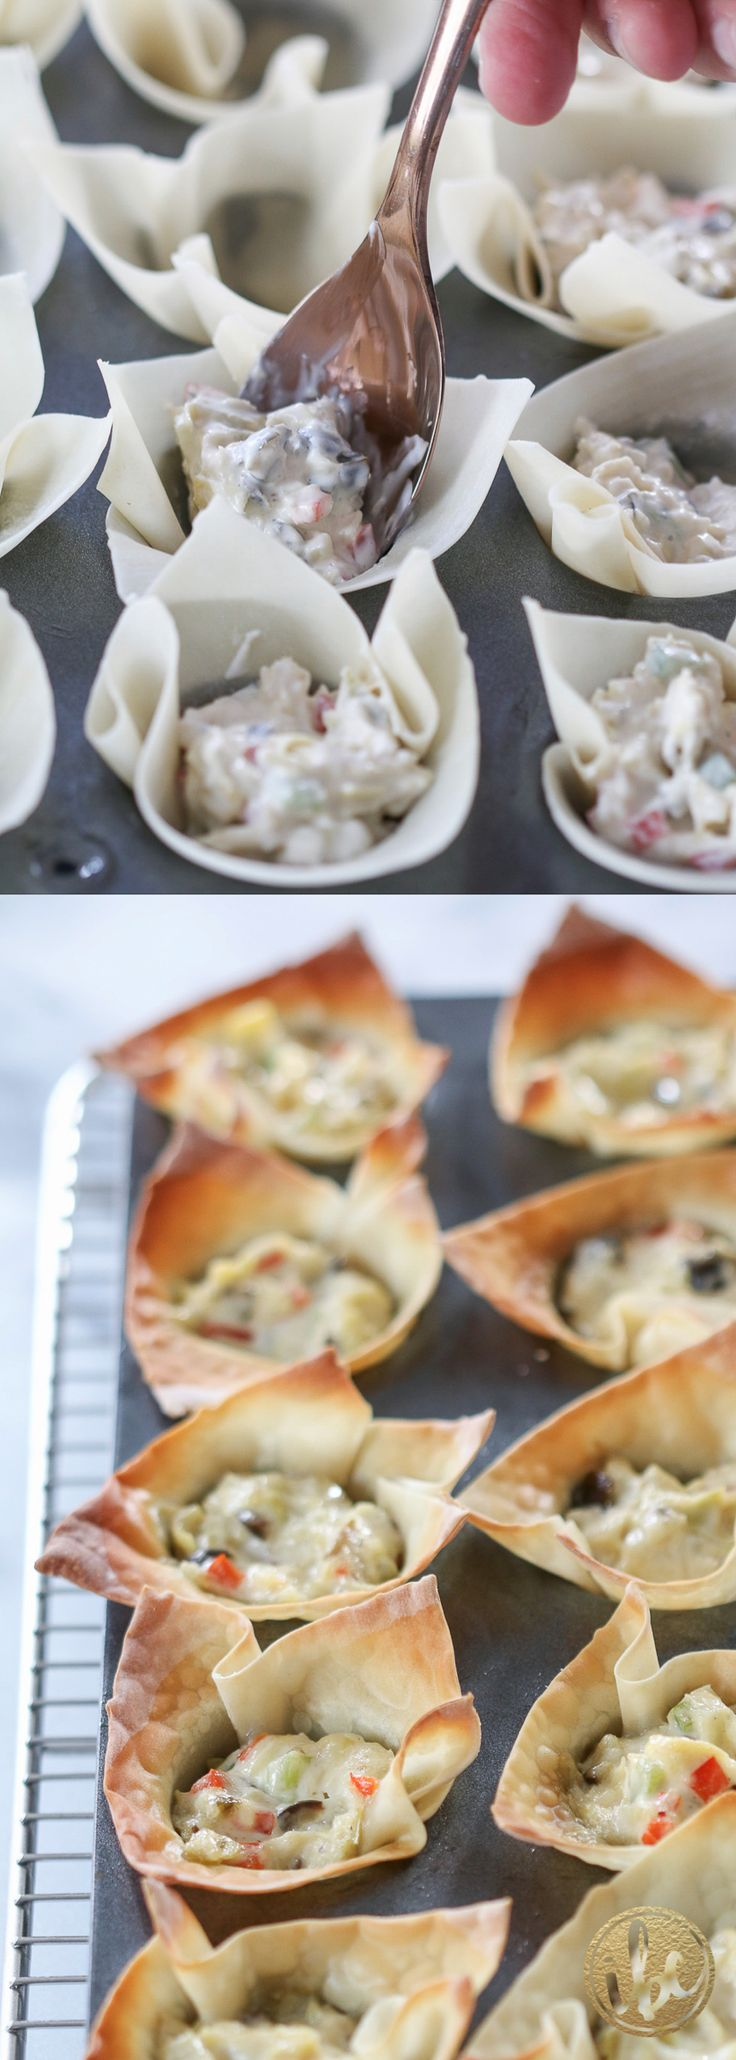 Artichoke Wonton Wrapped appetizer recipe. One of my favorite Christmas holiday appetizers.